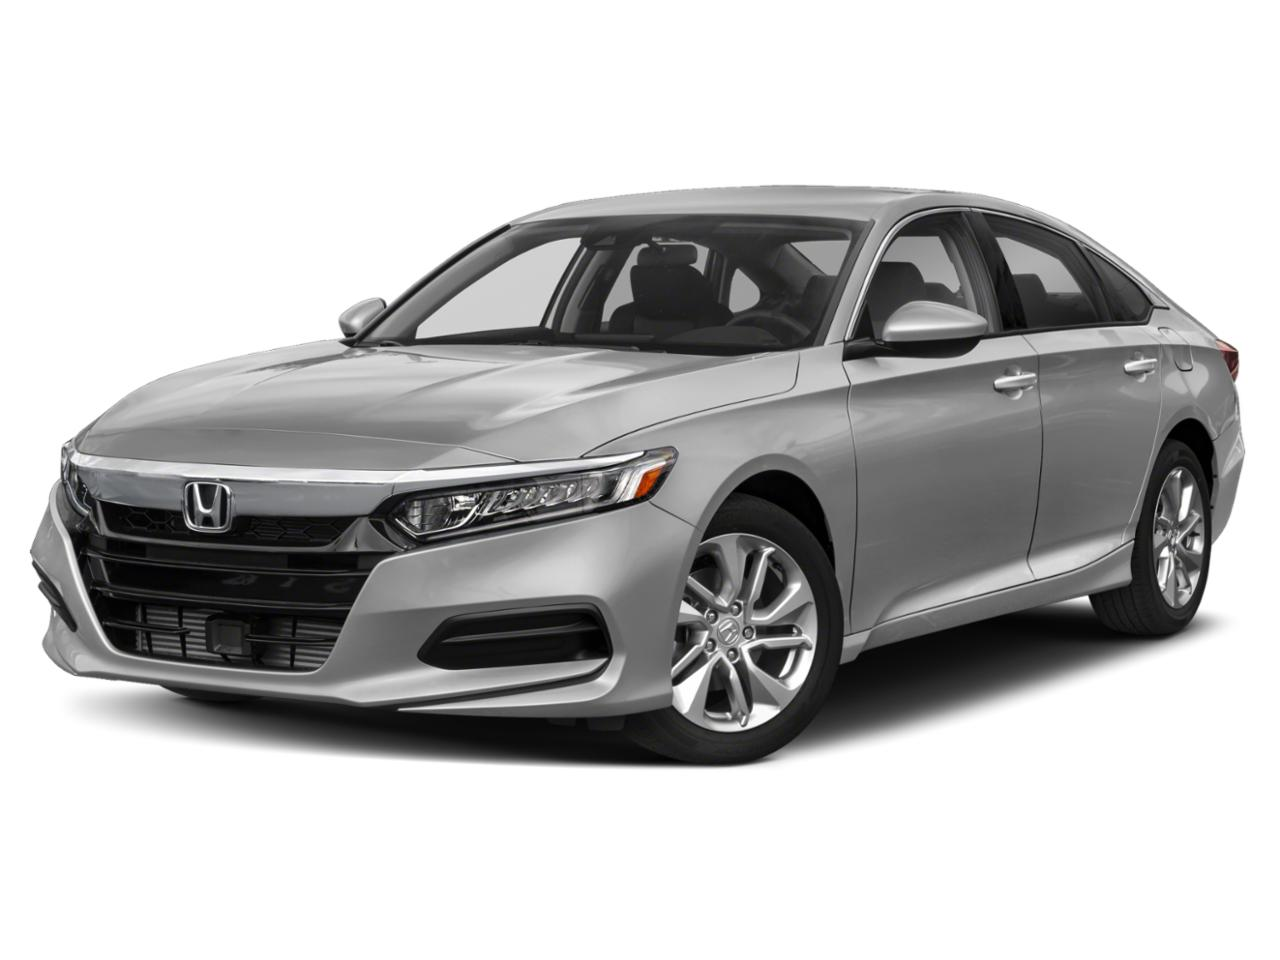 2020 Honda Accord Sedan Vehicle Photo in Lake Bluff, IL 60044